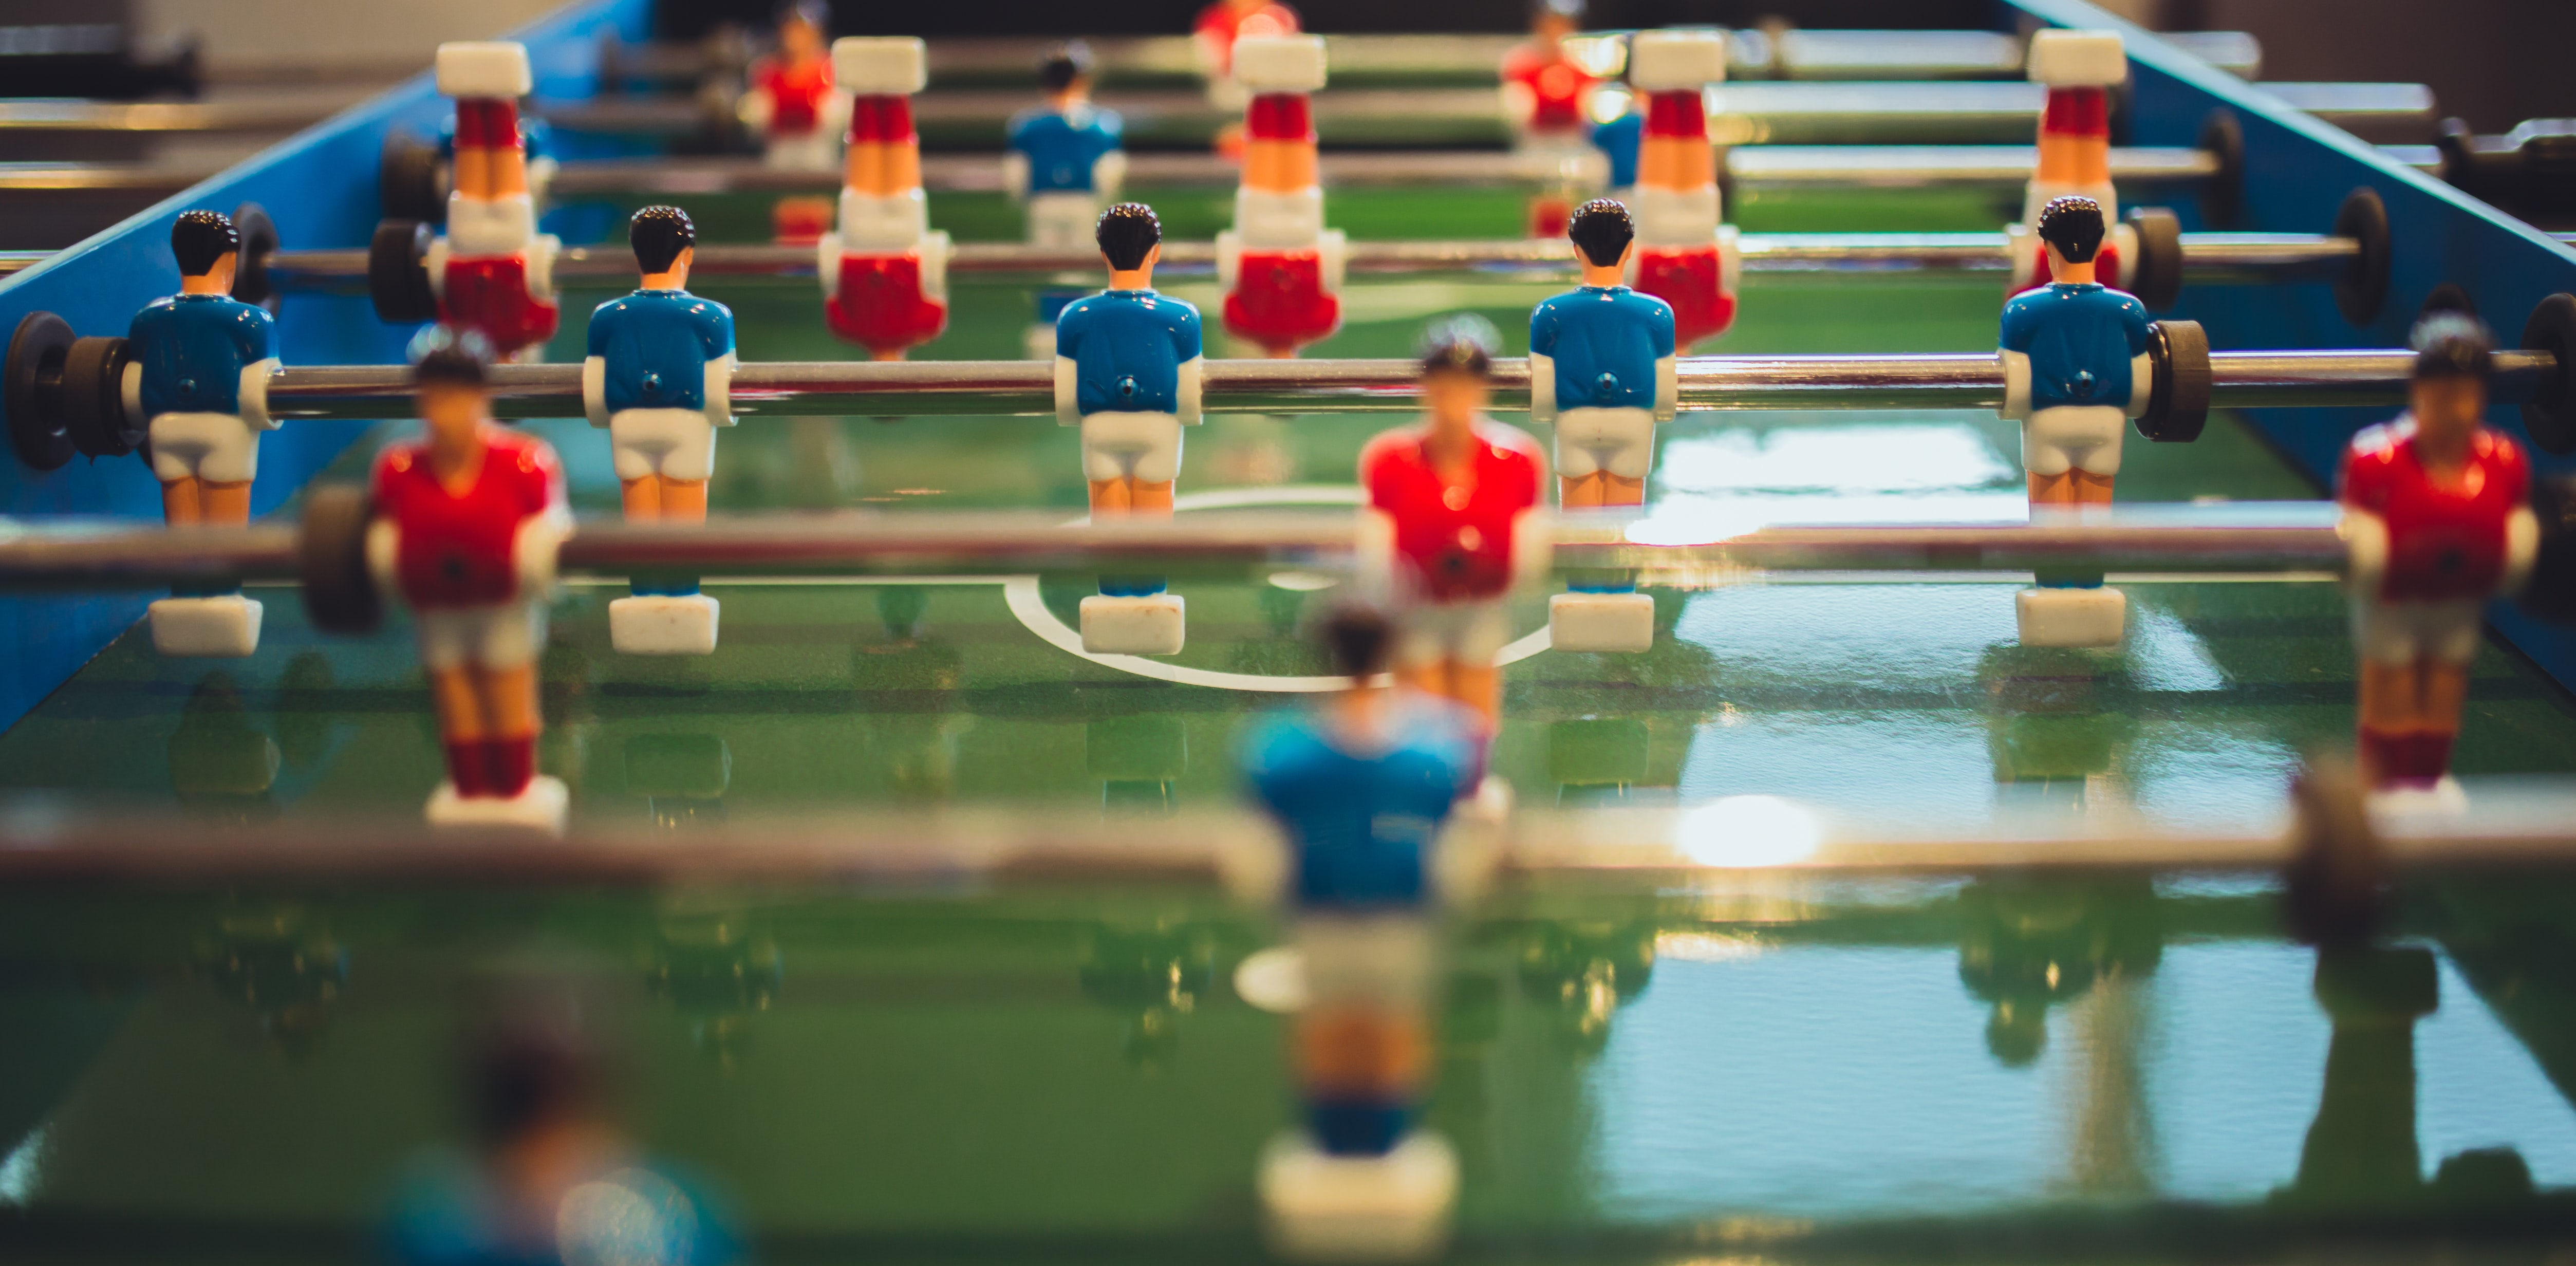 A foosball table with players wearing red and blue jerseys in Rosebank